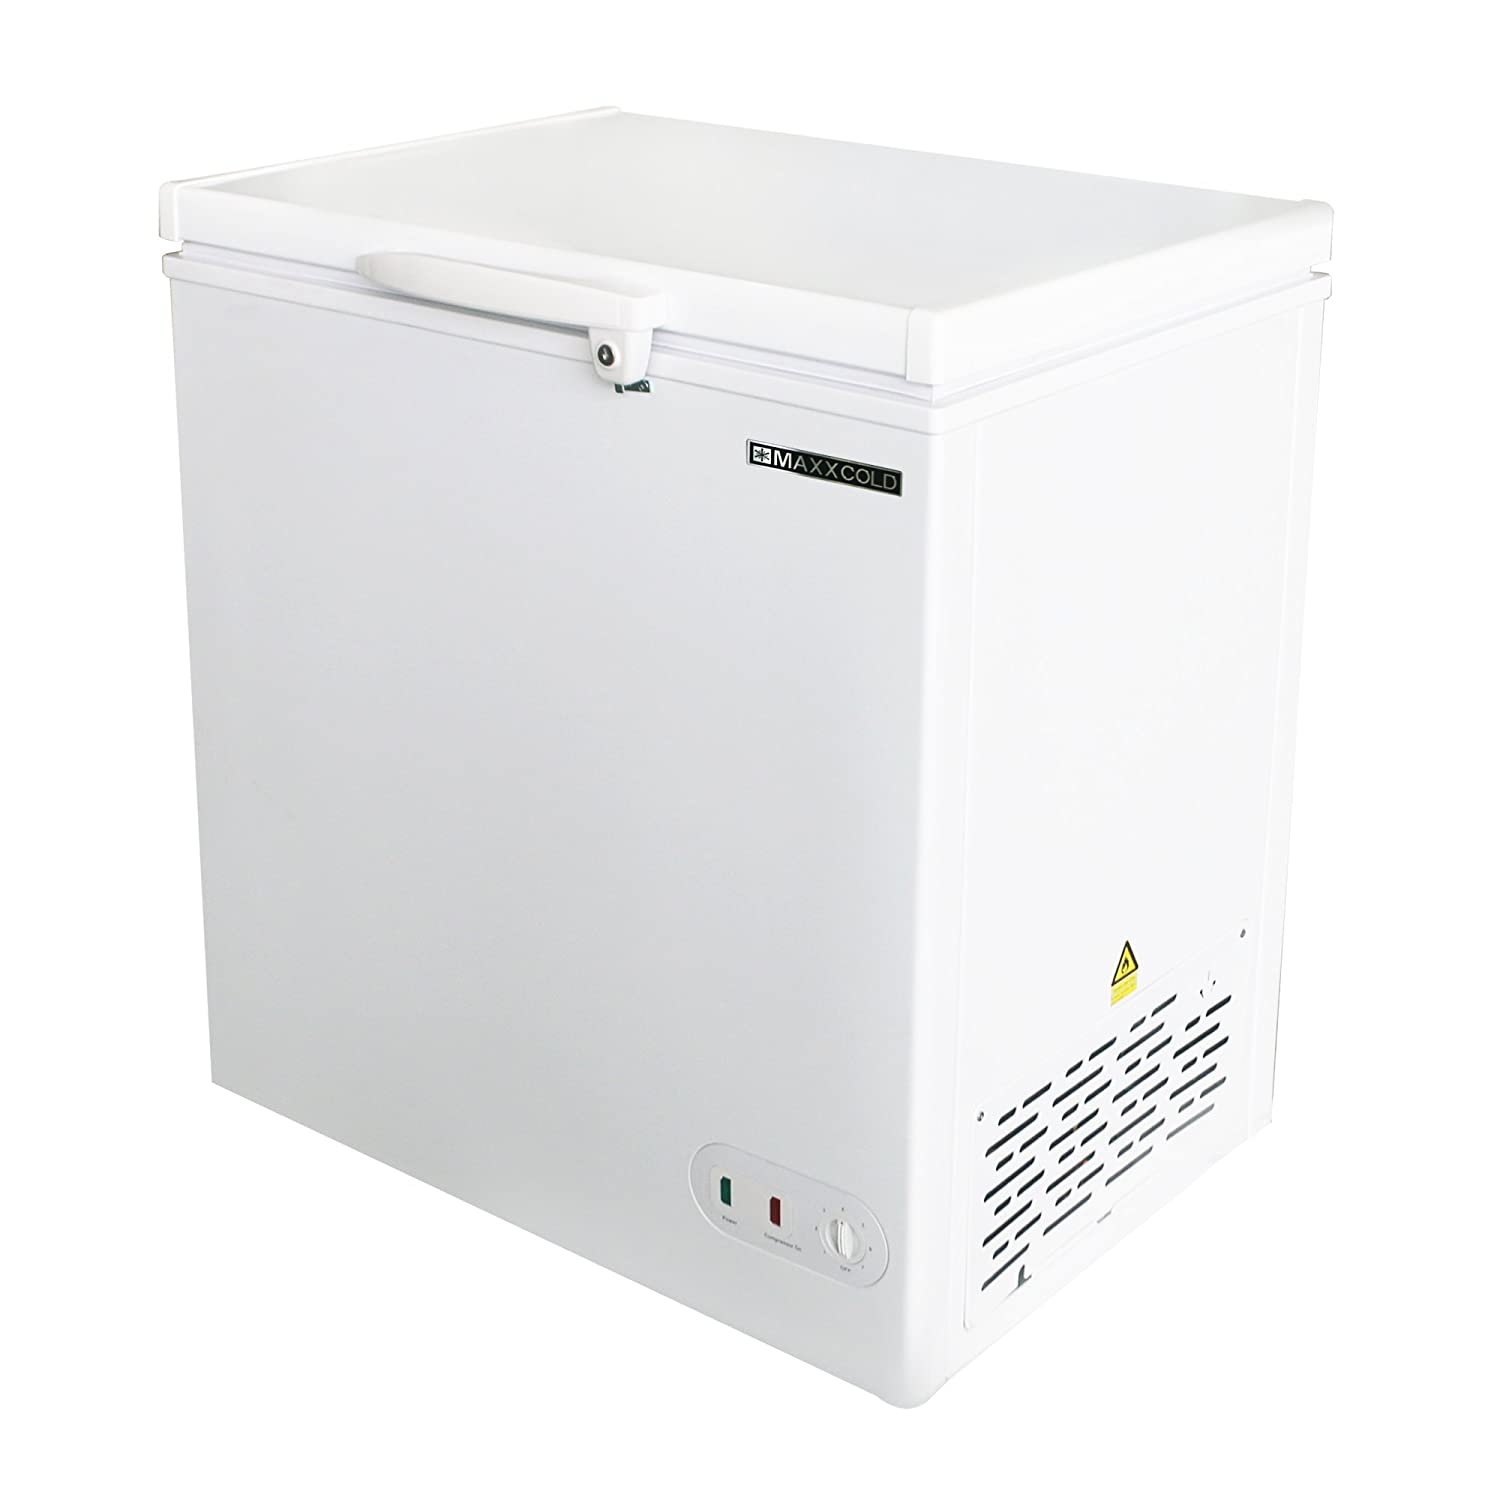 Maxx Cold 5.2 Cubic Feet 147 Liter Solid Hinged Top Sub Zero Commercial Chest Freezer with Locking Lid NSF Garage Ready Manual Defrost Keeps Frozen for 2 Days In Case of Power Outage, 30.4 In W, White 71aRE8DvR0L._SL1500_